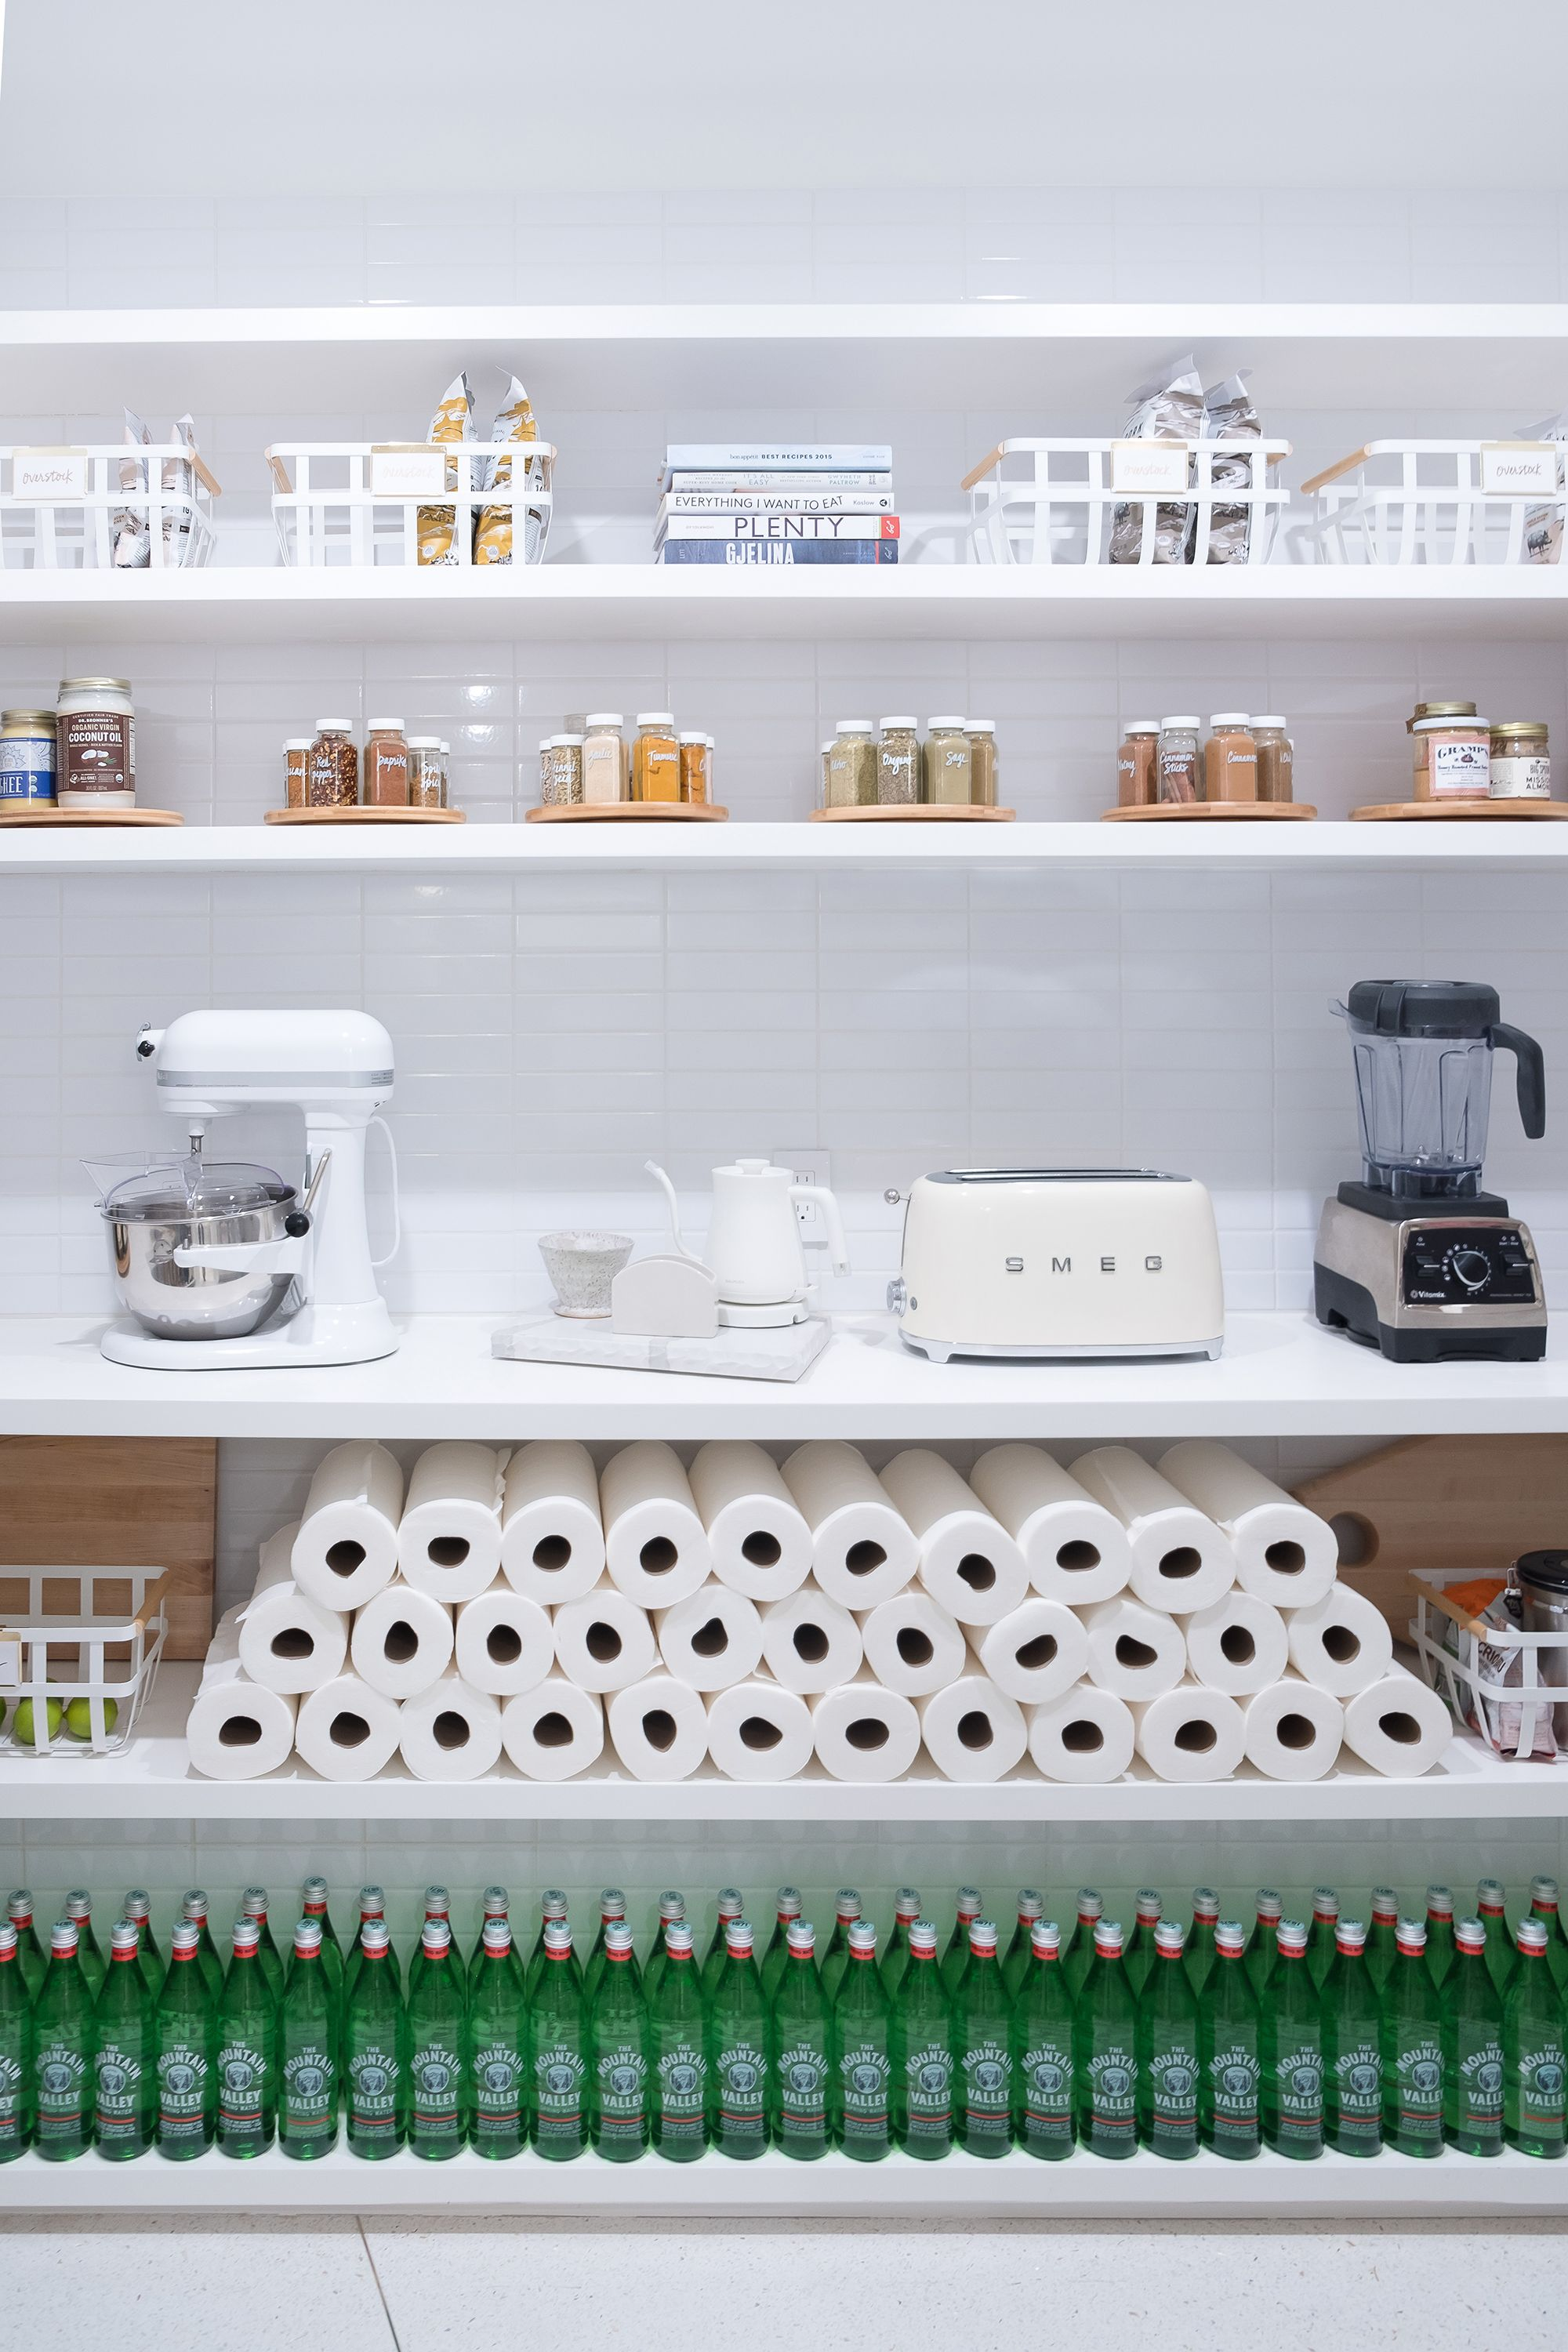 20 Insanely Organized Cabinets To Motivate You